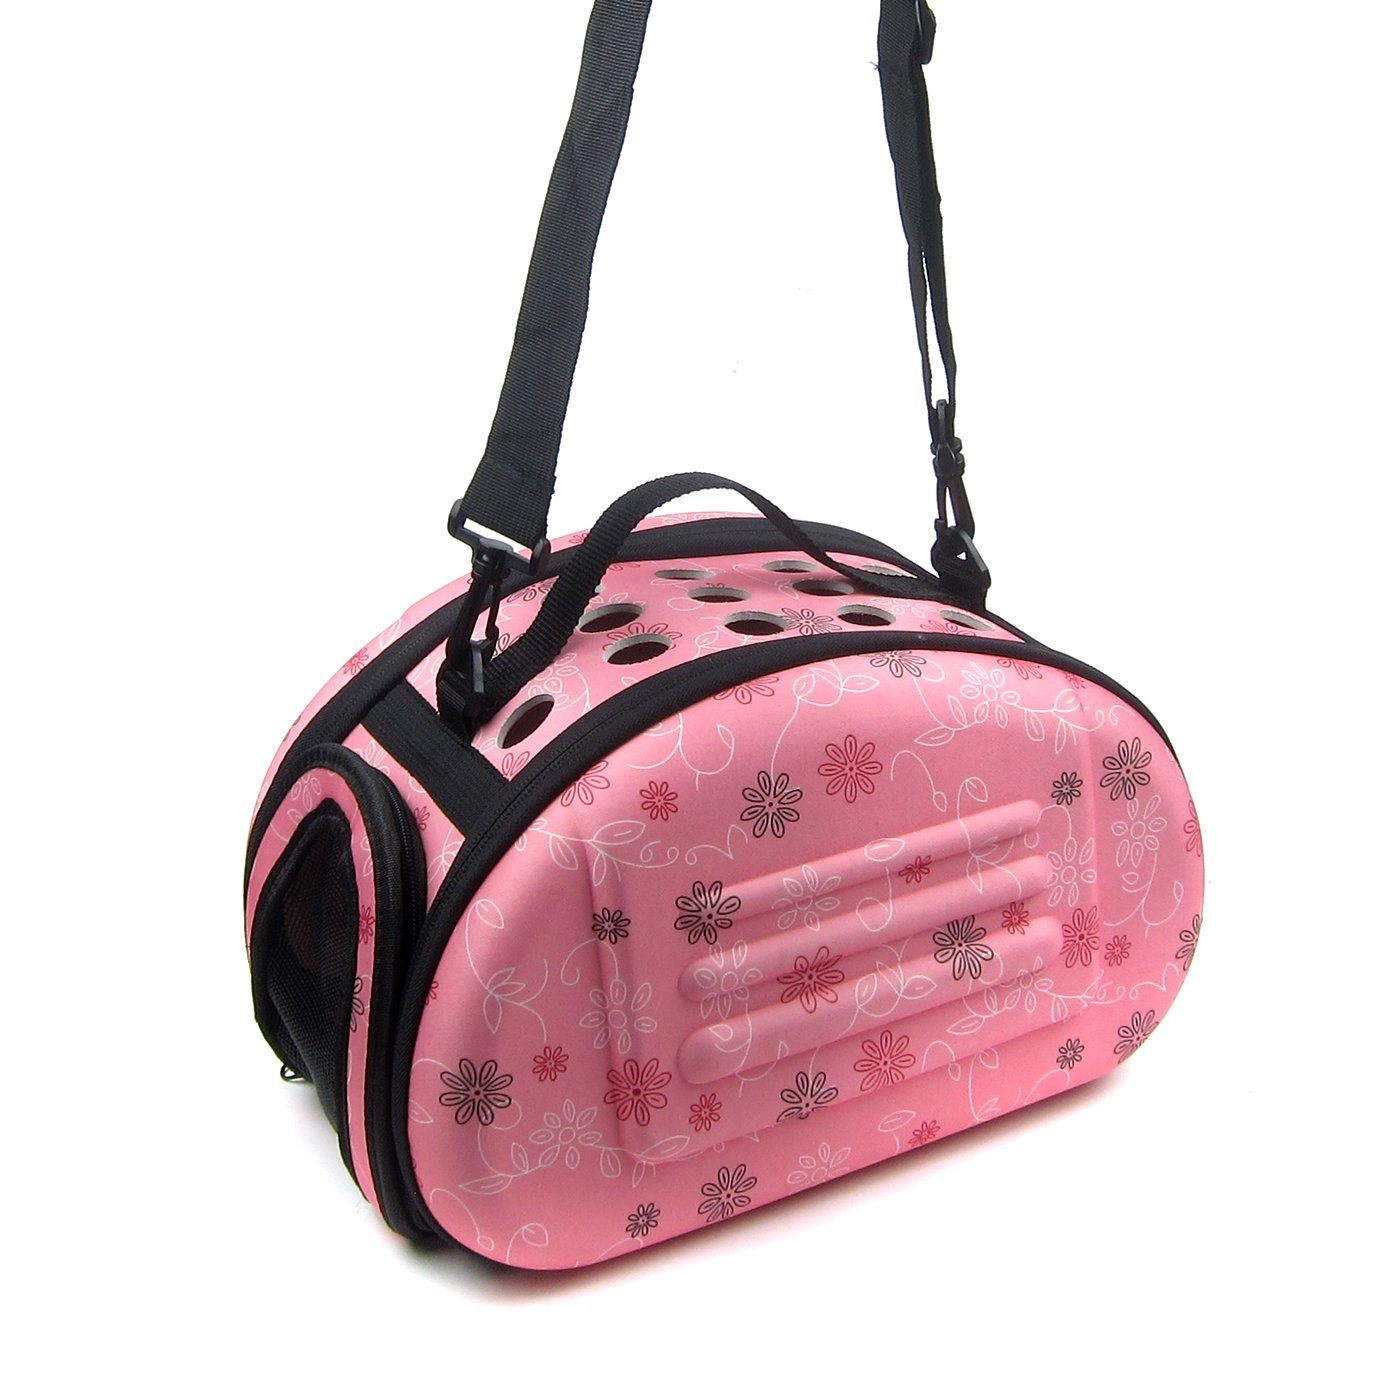 Alfie Pet by Petoga Couture -Lonnie Travel Carrier Vacation House for Small Animals like Dwarf Hamster and Mouse - Color: Pink, Size: Small